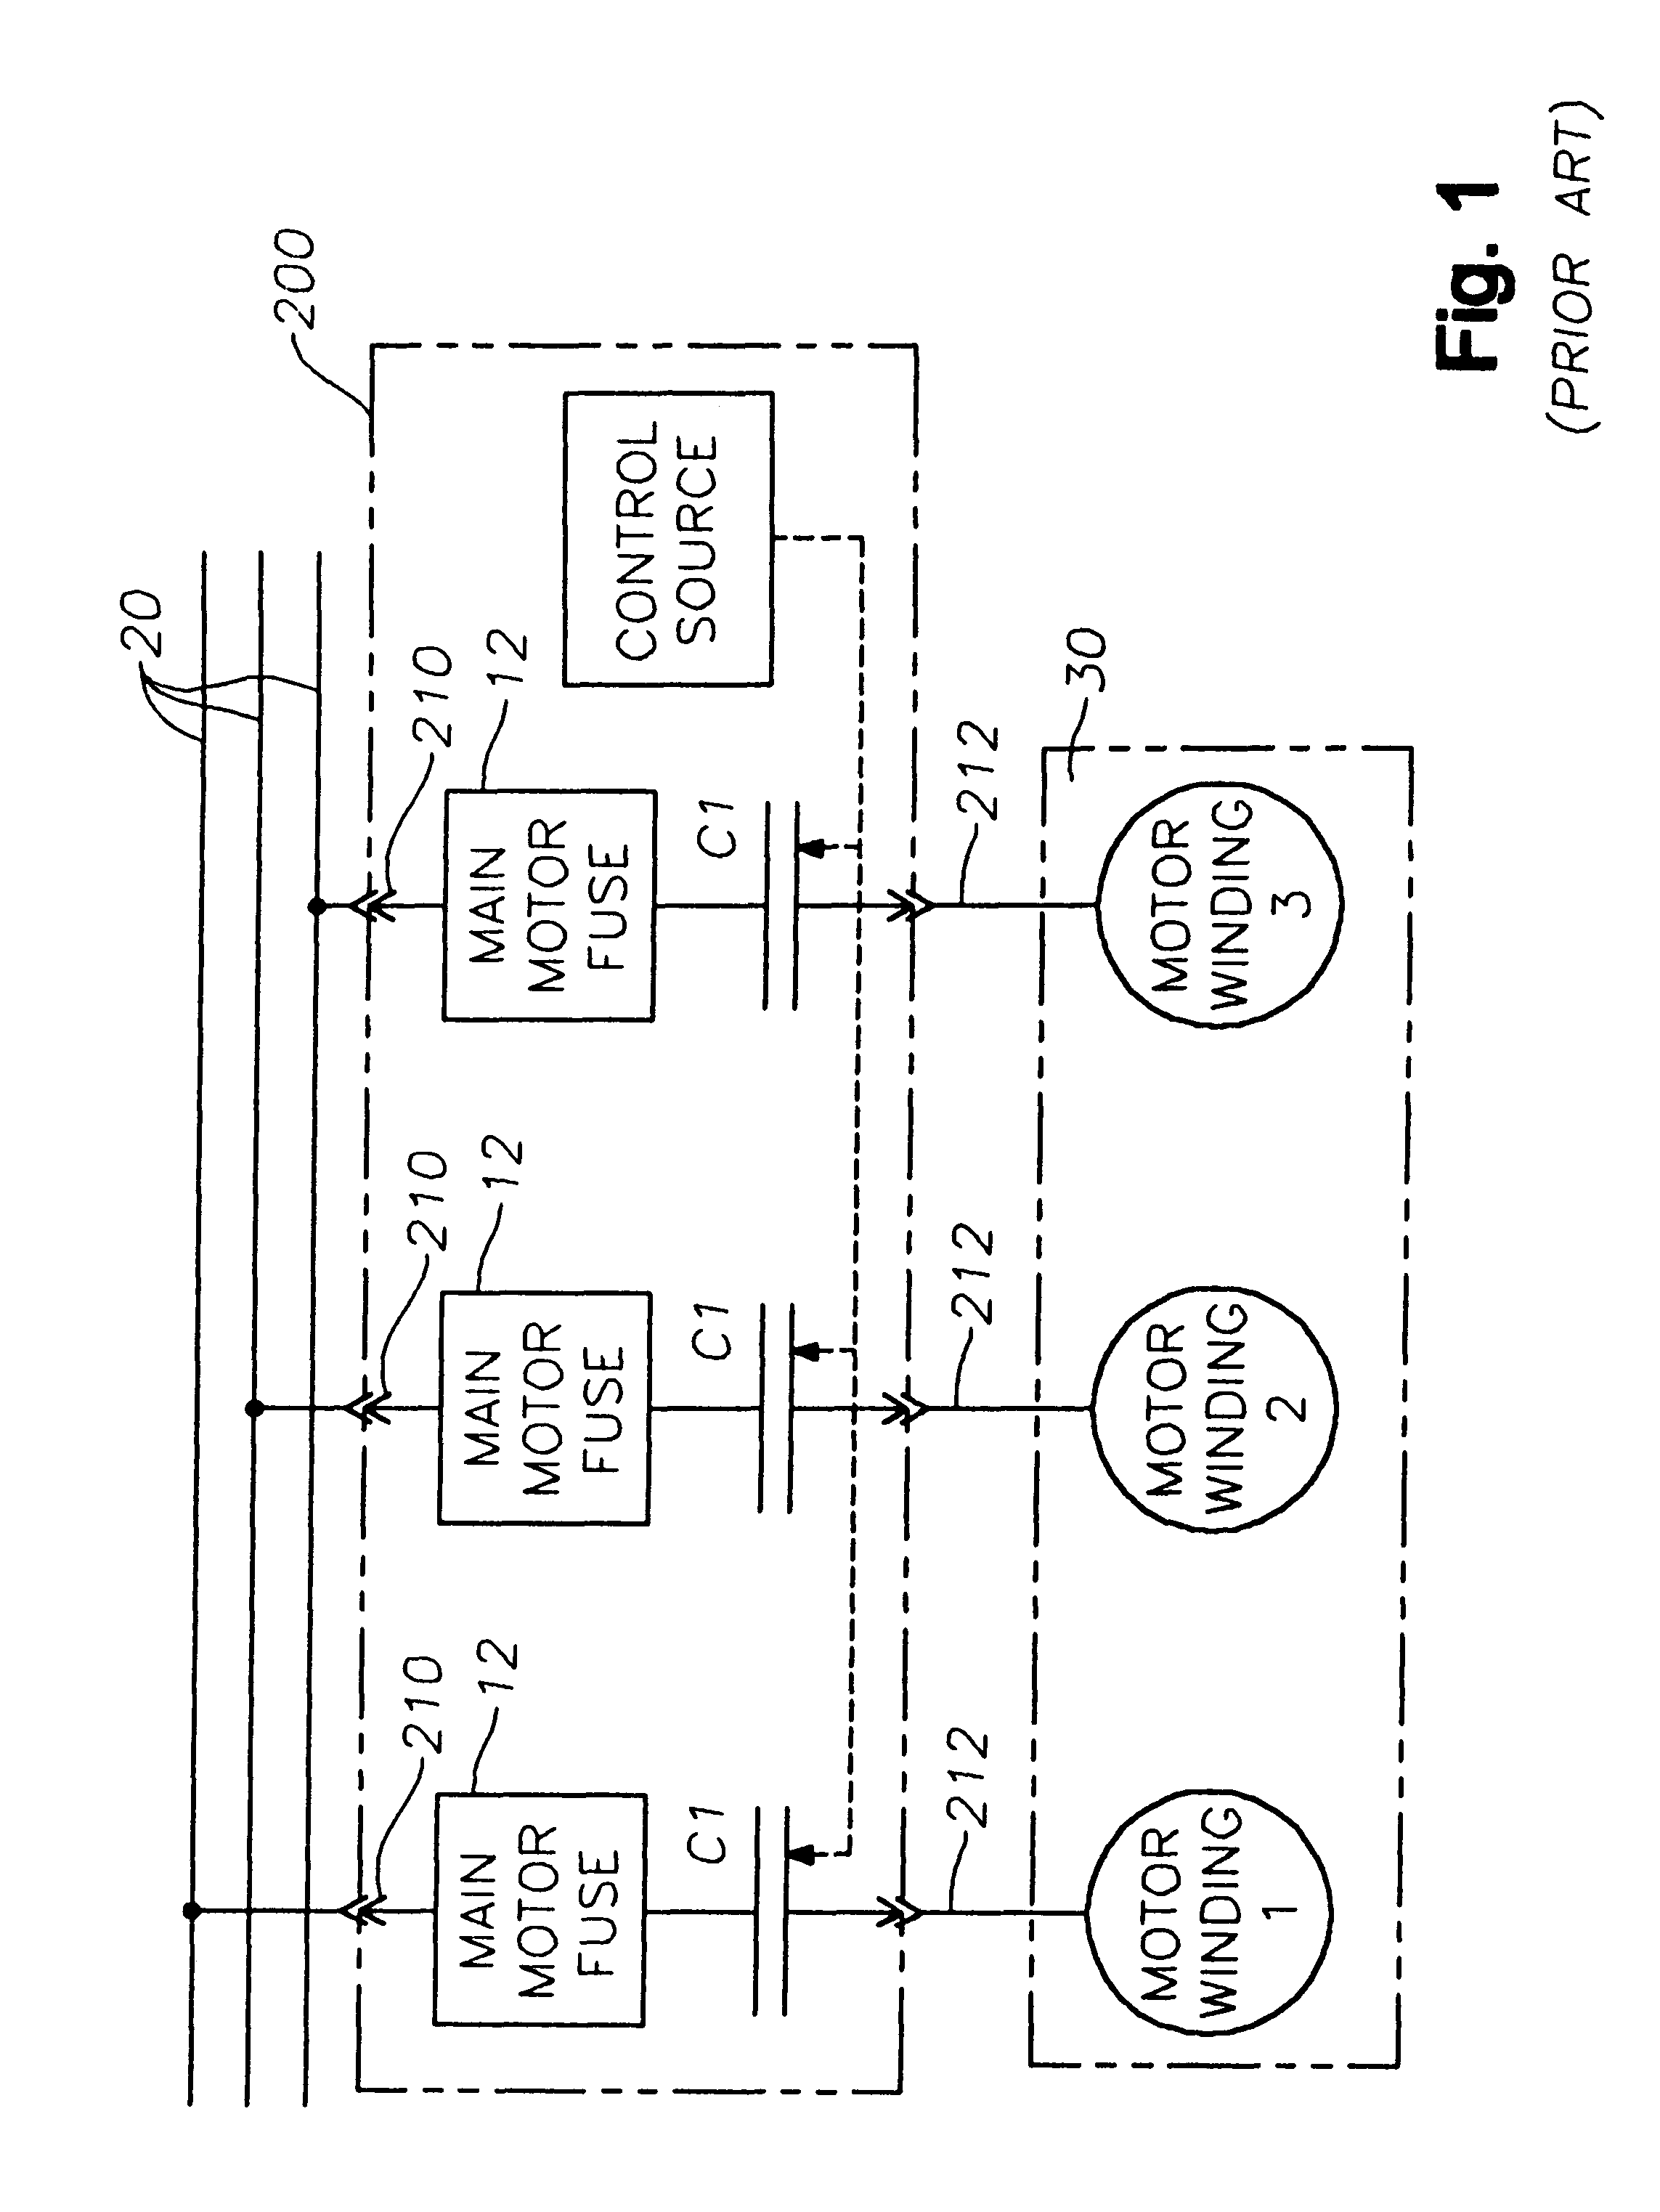 Cutler Hammer Starter Wiring Diagram Motor Control 1000v Patent Us6208111 Arrangement With Soft Start